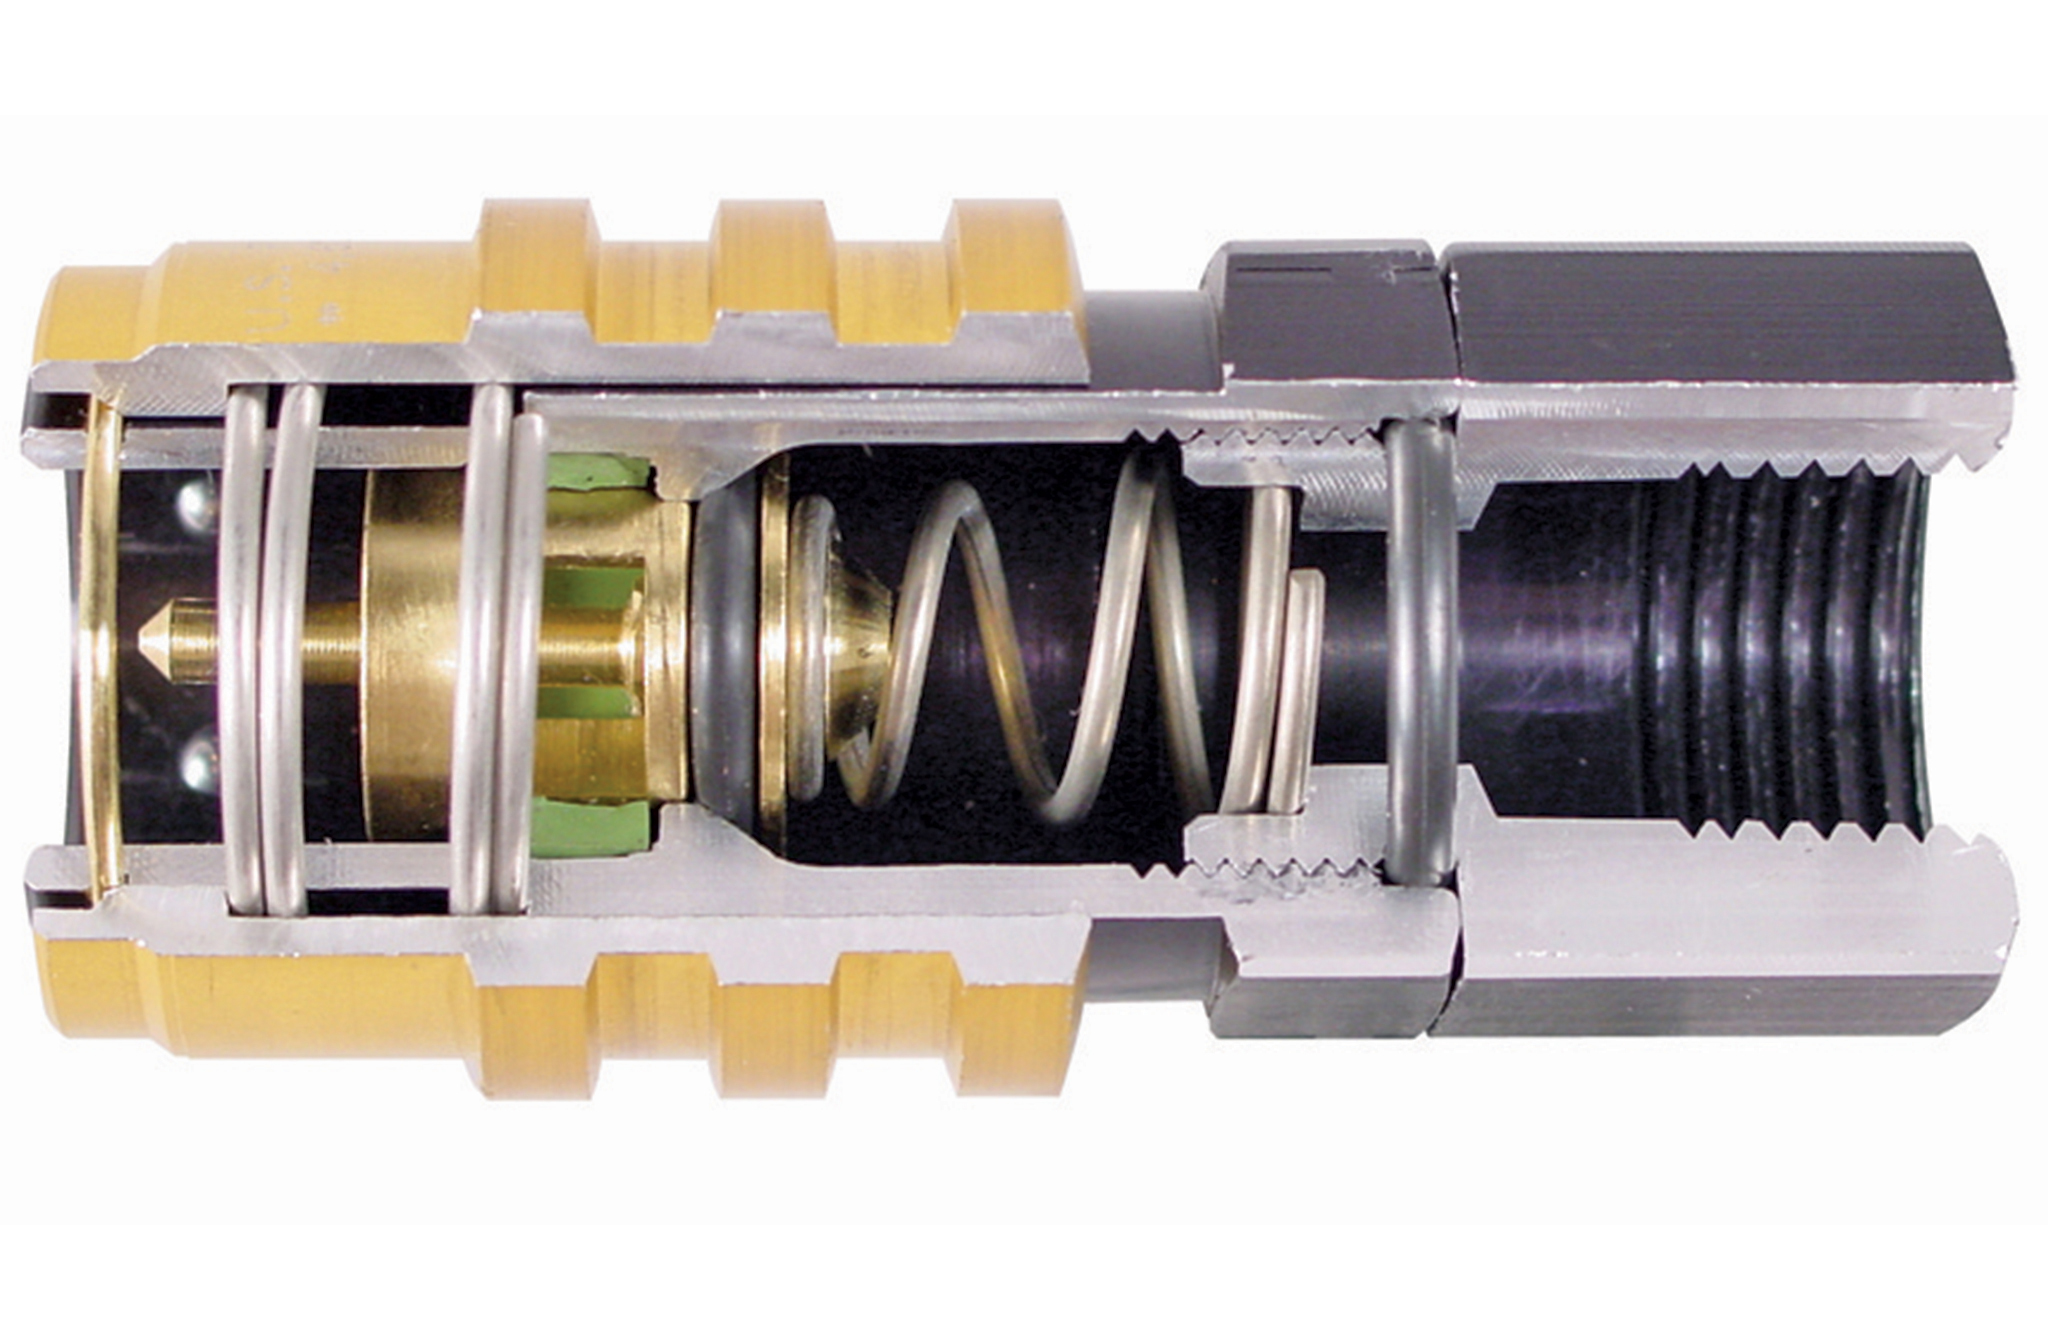 The detailed cutaway of the Jiffy-tite fitting shows the heart of the leak-free system.